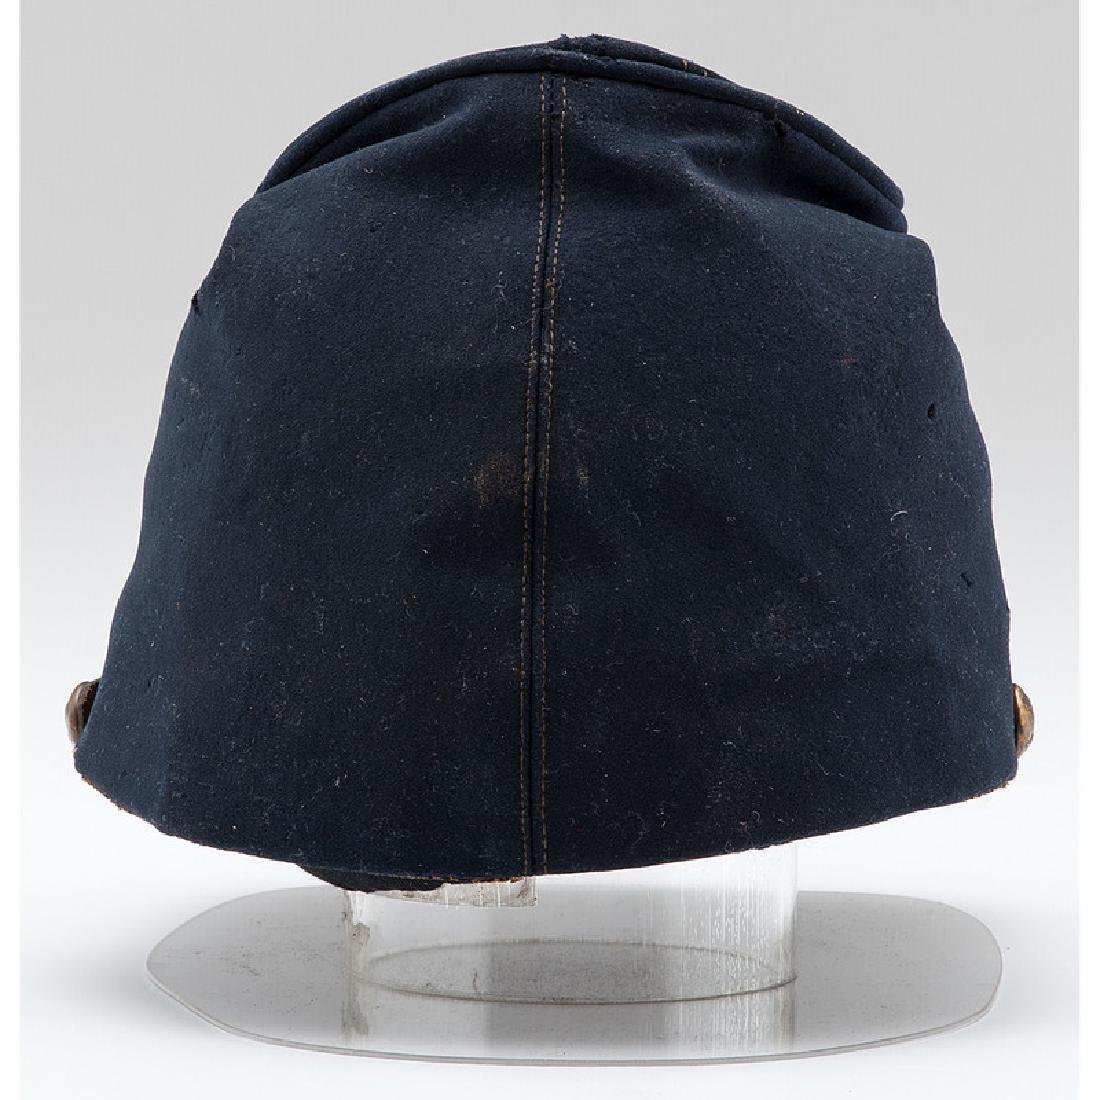 Commercial Federal Officer's Cap - 3